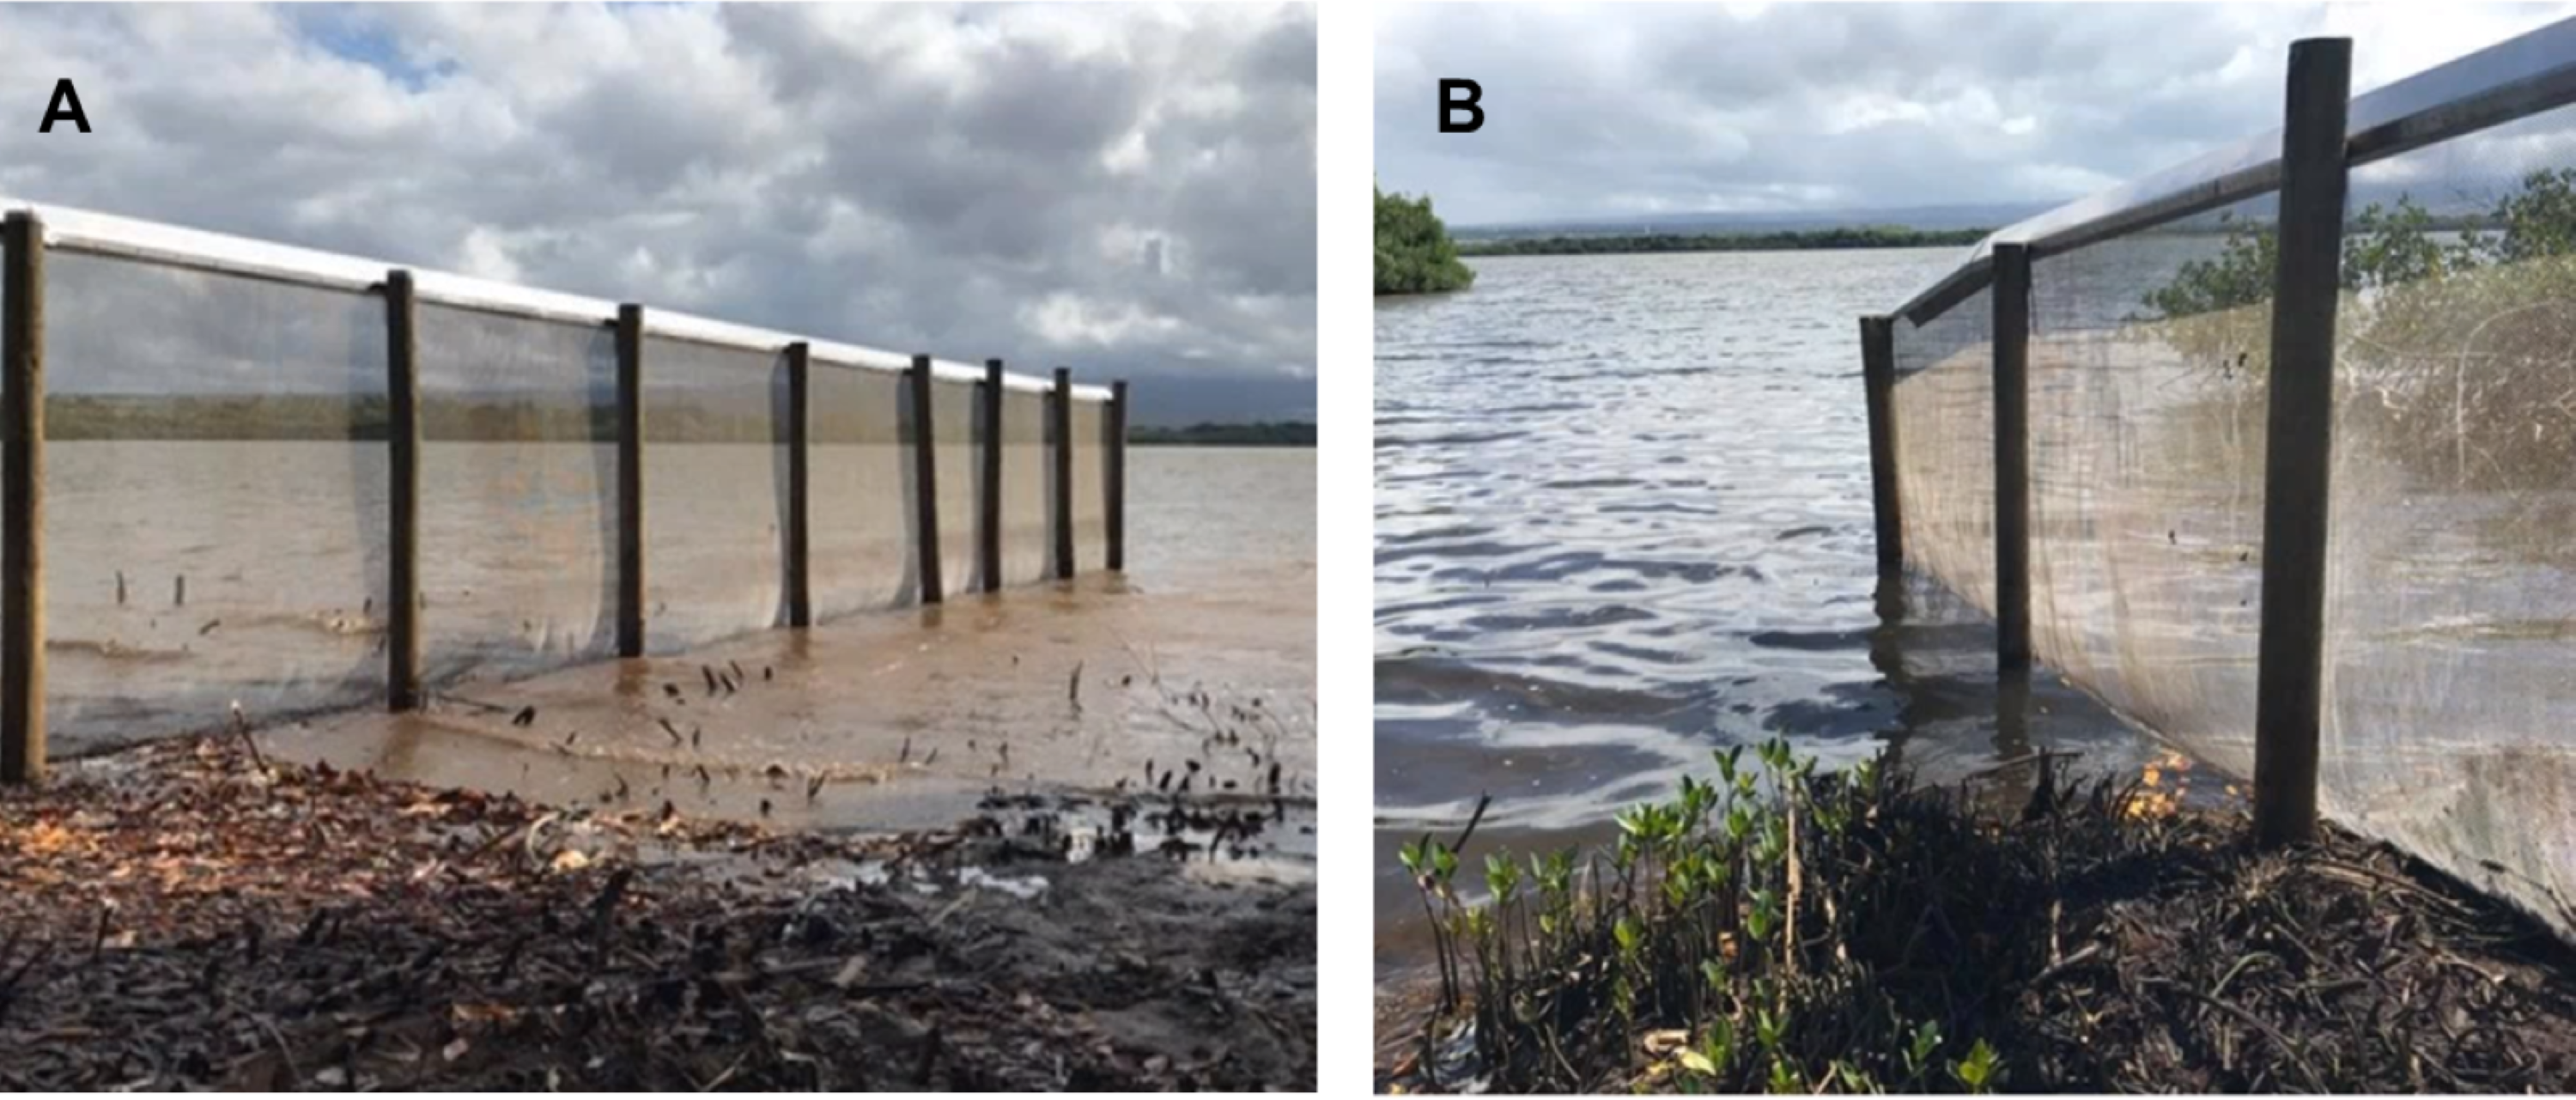 From the paper: The west (A) and east (B) ends of the exclusion fence extending into Pearl Harbor, using the water as a natural barrier to exclude mammalian predators.